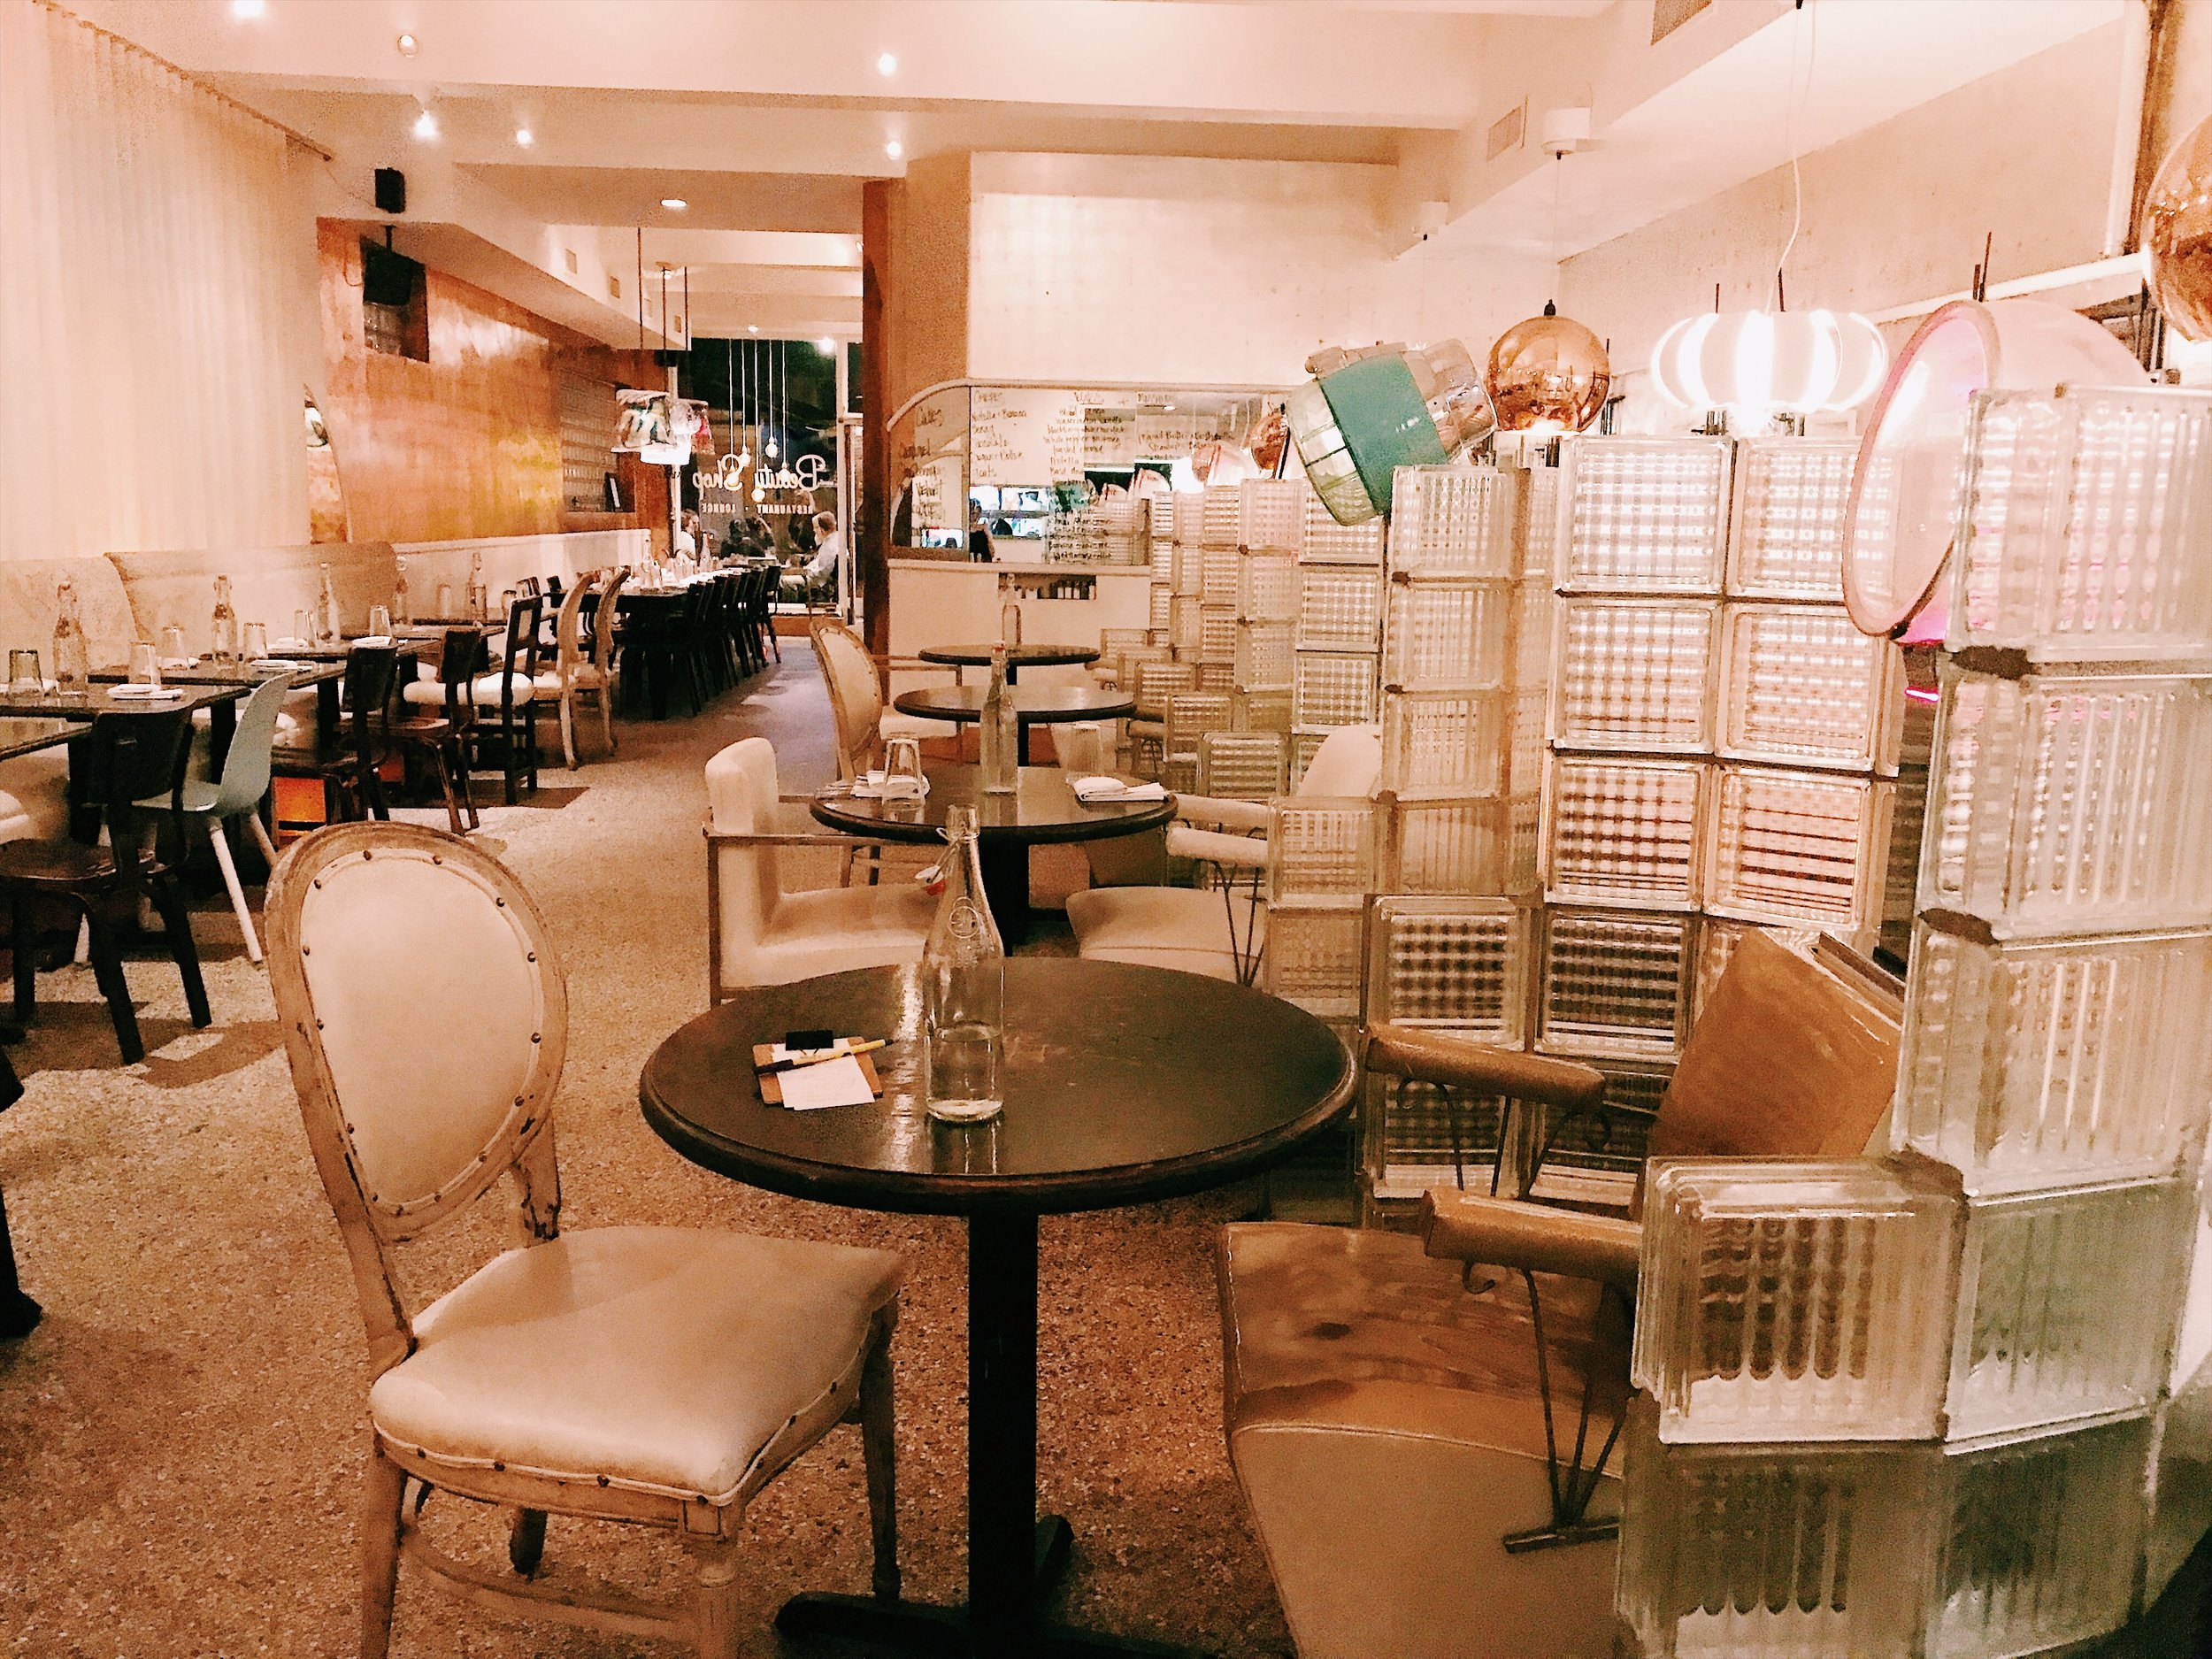 The Beauty Shop restaurant, Memphis – be warned the food is good, but it's pretty pricey!